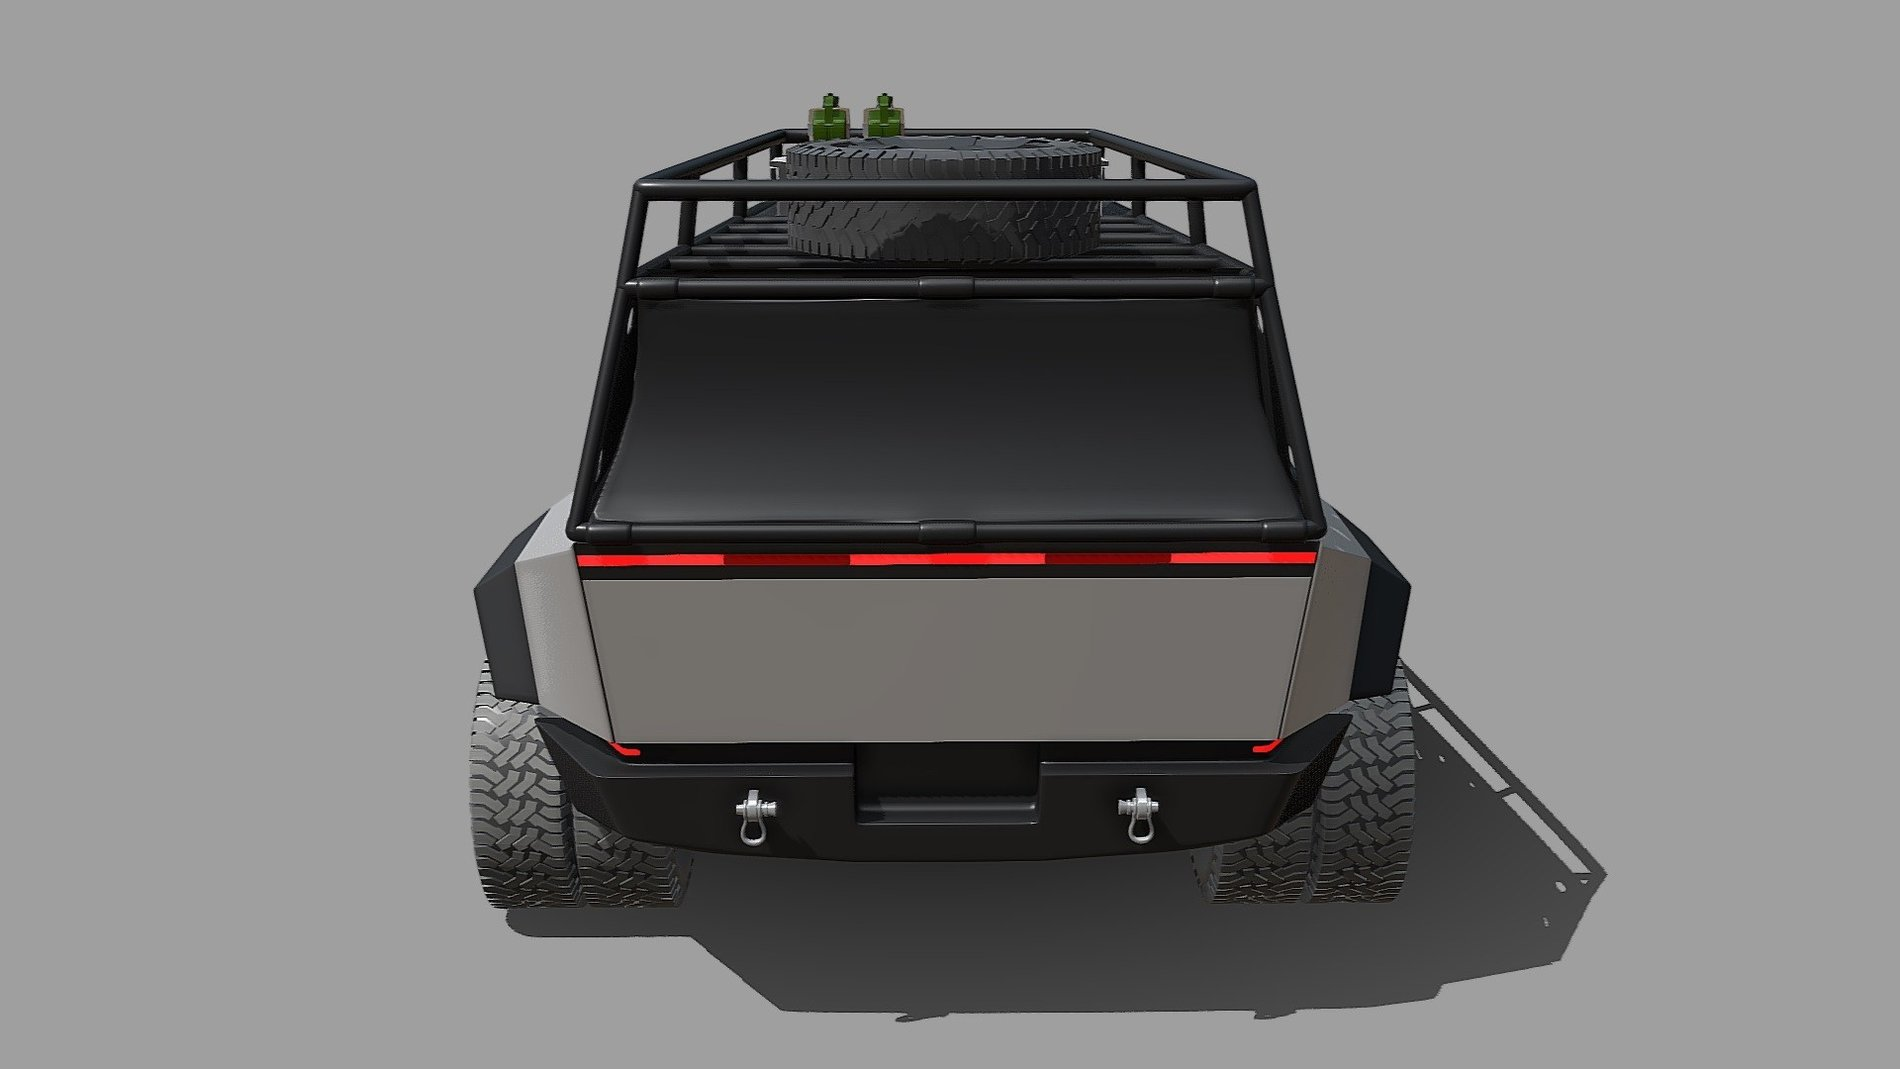 Roof_Bed_Cargo_Rack_Tesla_Cybertruck_OffRoad_004.jpg